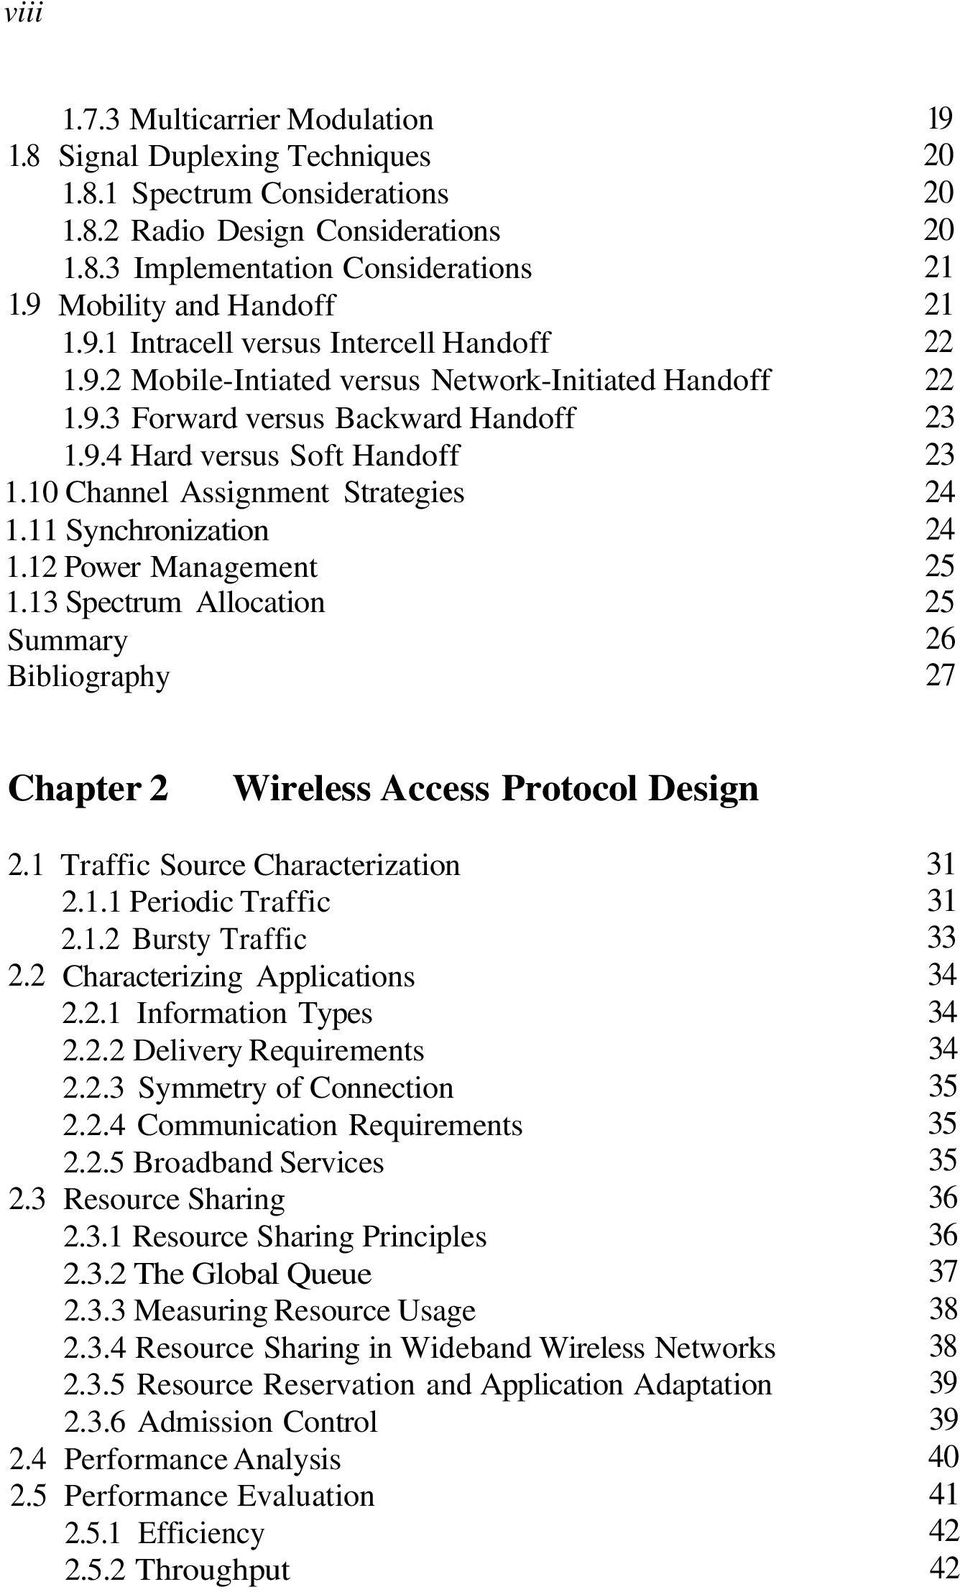 10 Channel Assignment Strategies 1.11 Synchronization 1.12 Power Management 1.13 Spectrum Allocation 19 20 20 20 21 21 22 22 23 23 24 24 25 25 26 27 Chapter 2 Wireless Access Protocol Design 2.1 2.2 2.3 2.4 2.5 Traffic Source Characterization 2.